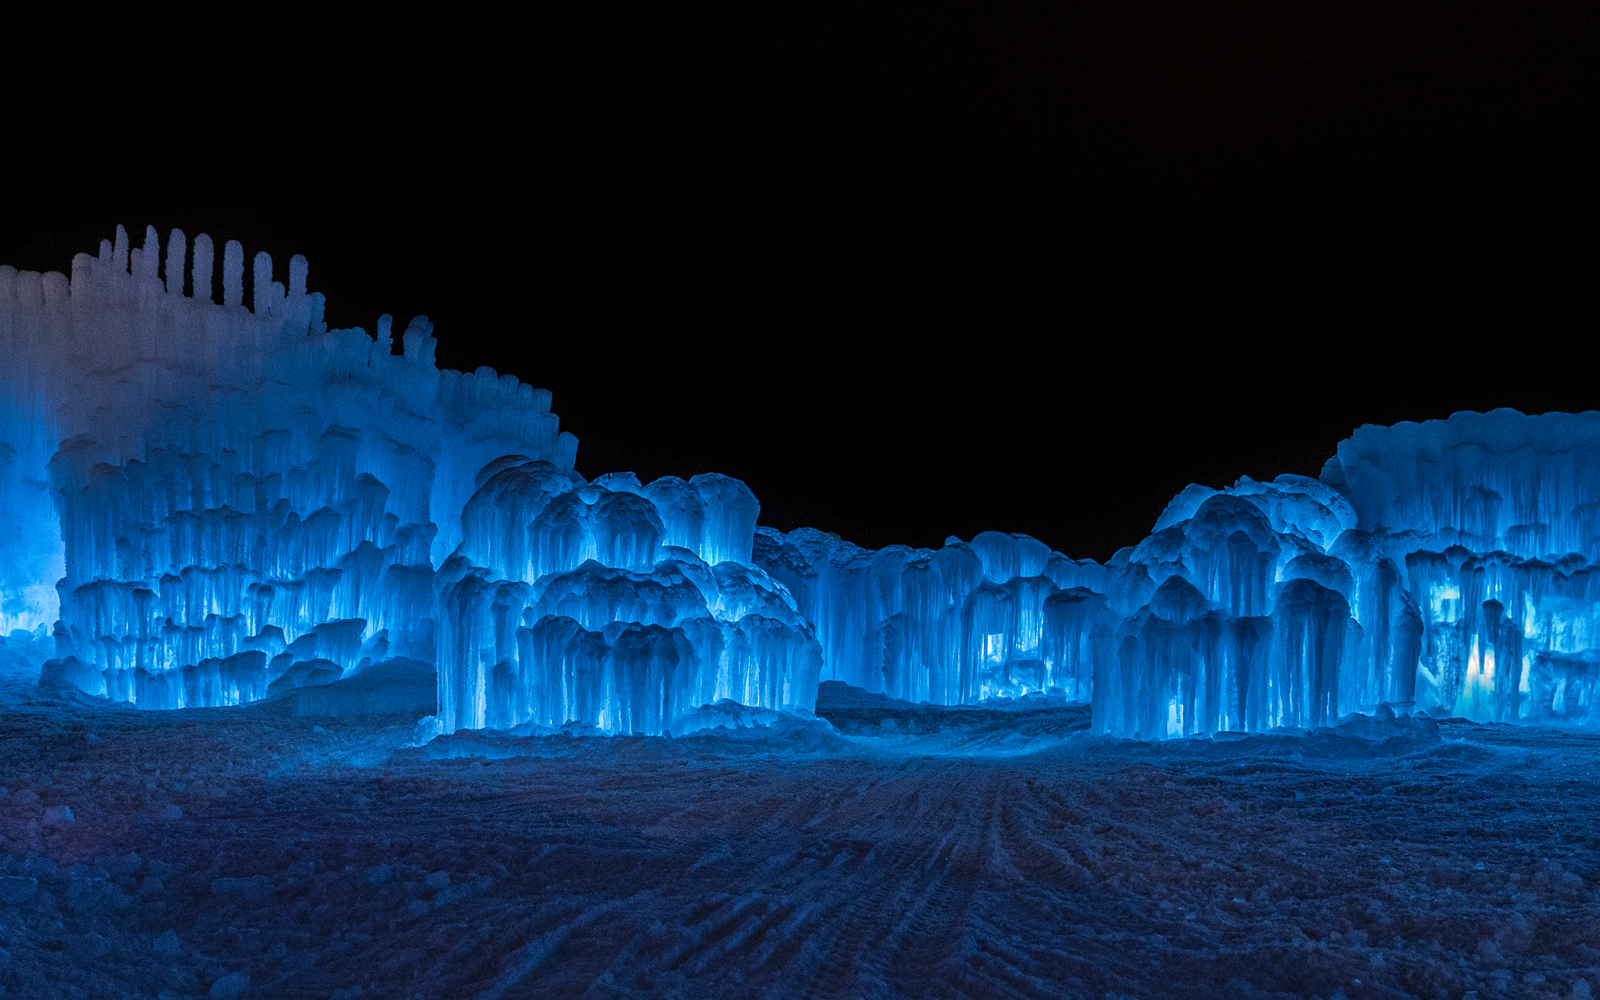 Massive, magical ice castles are opening around the U.S and Canada this winter